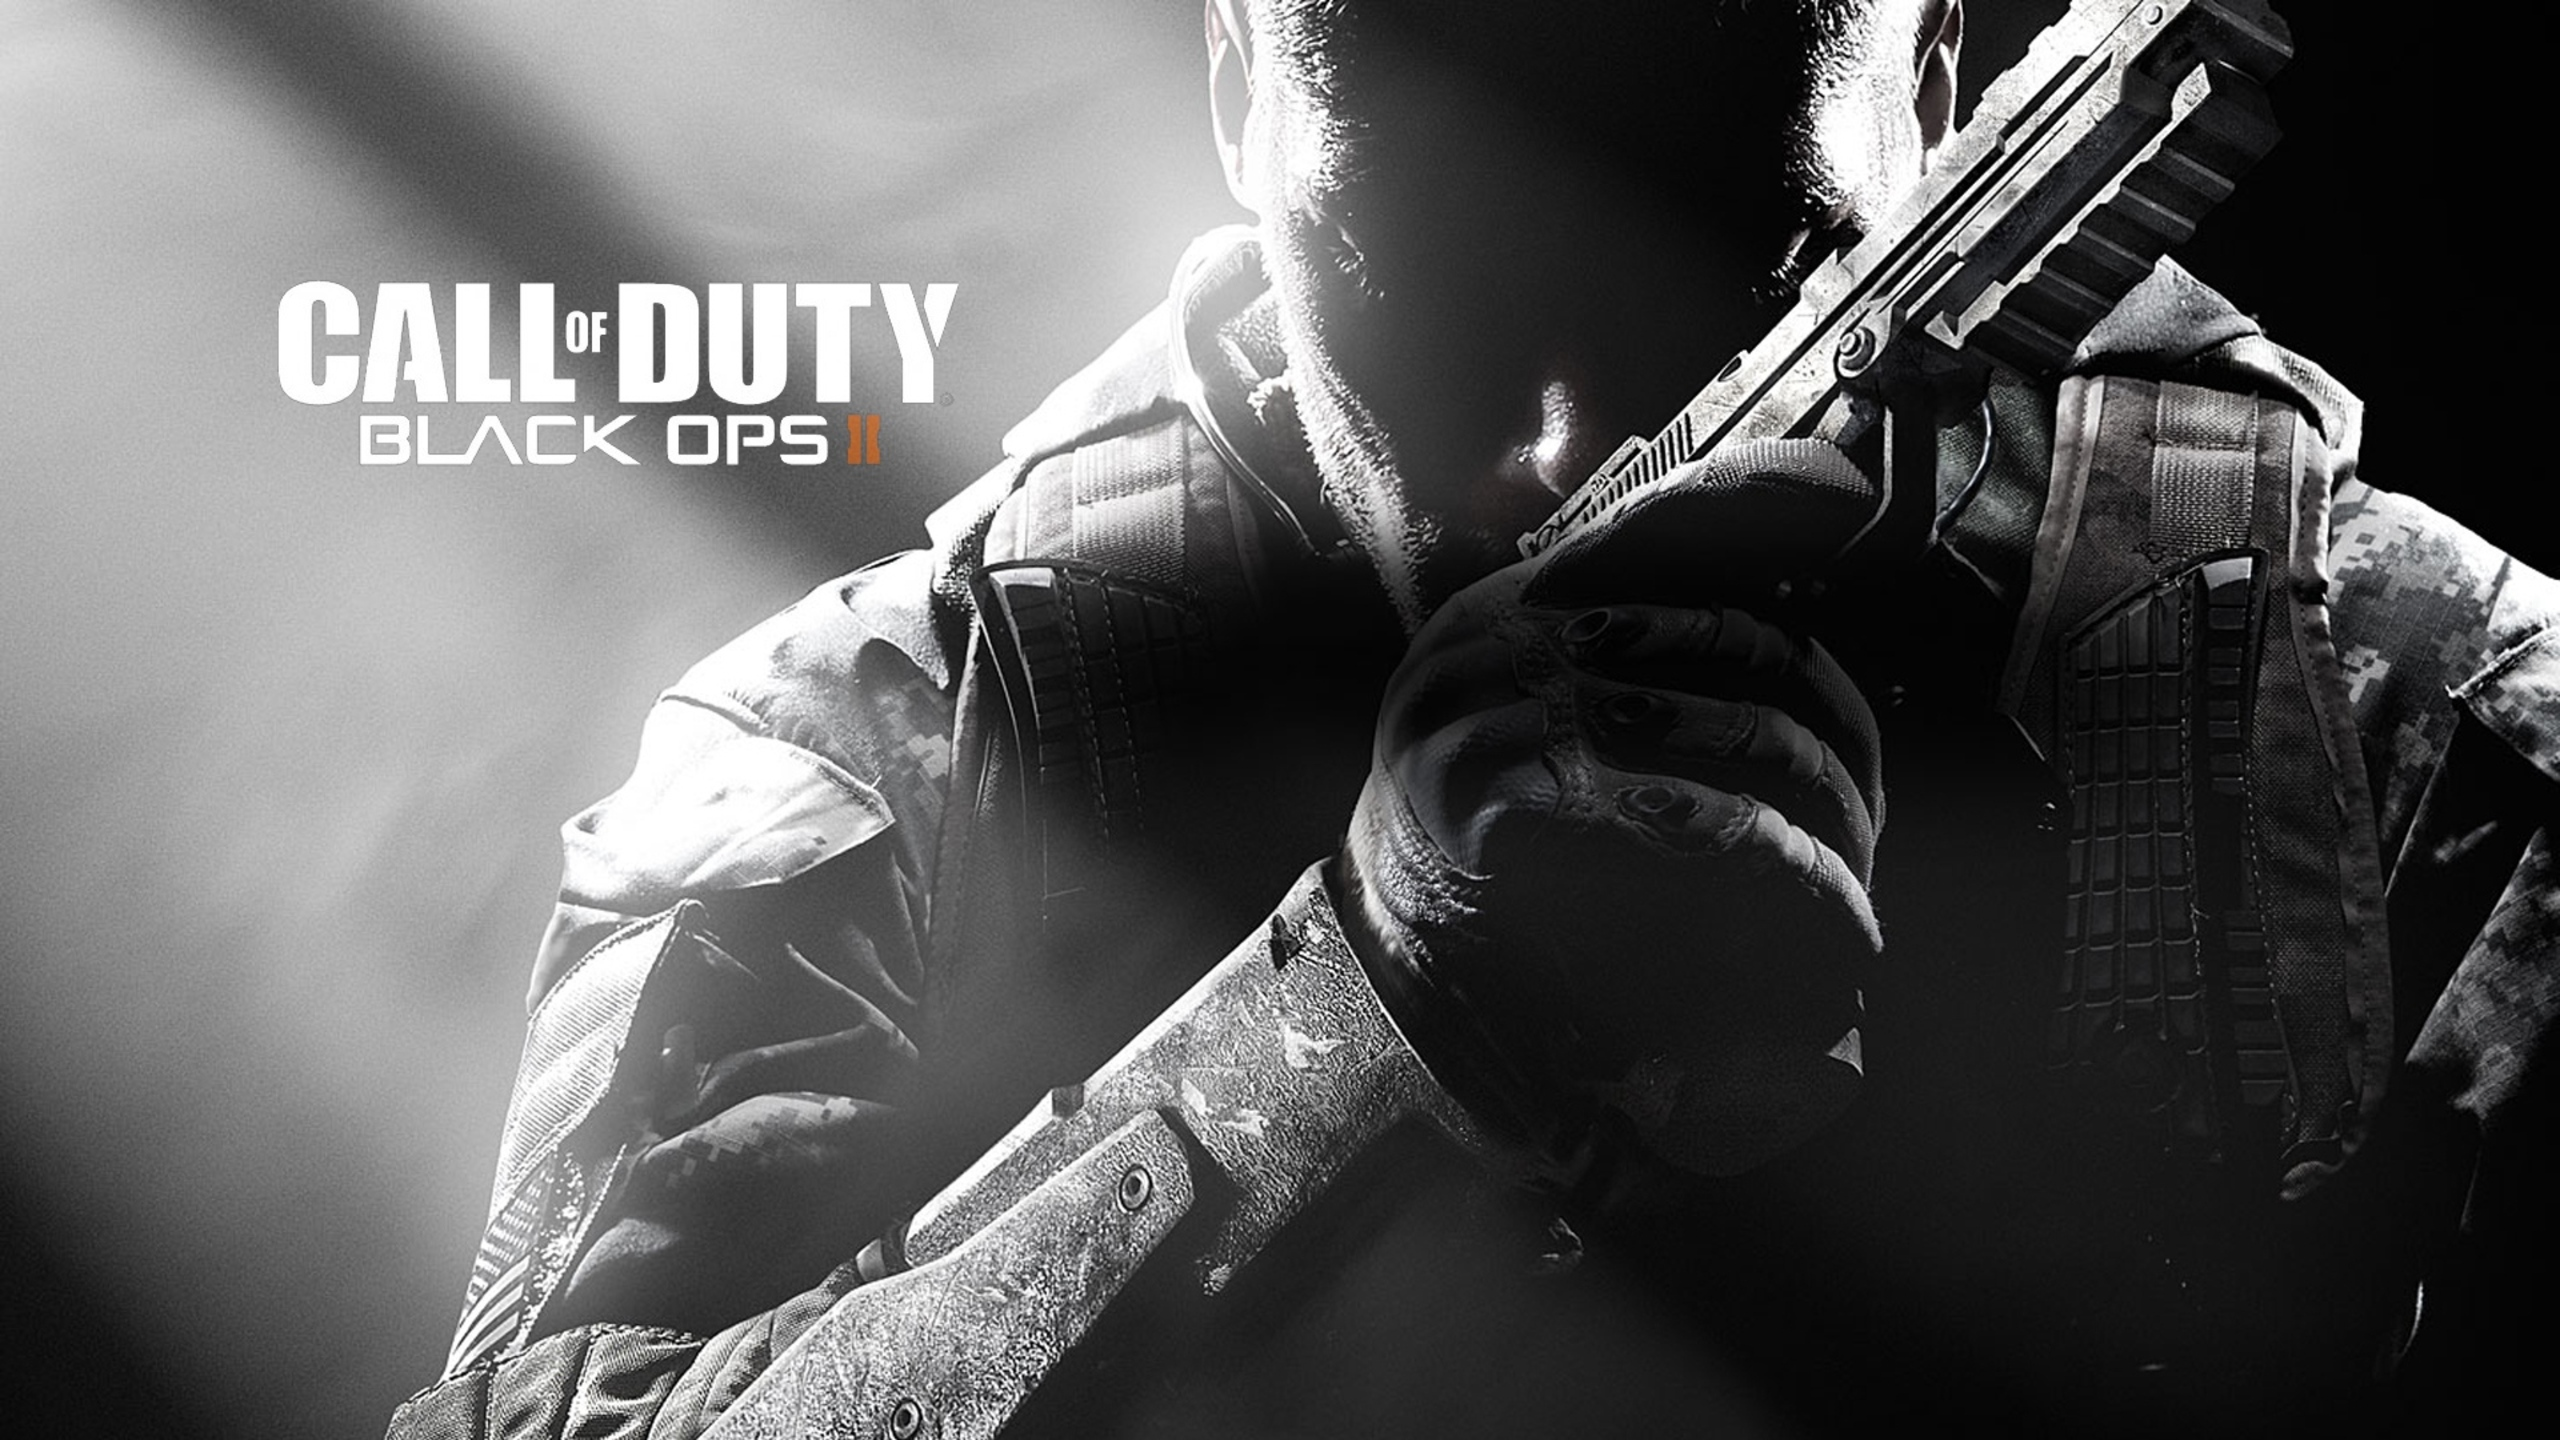 2560x1440 Call Of Duty Black Ops 2 1440p Resolution Hd 4k